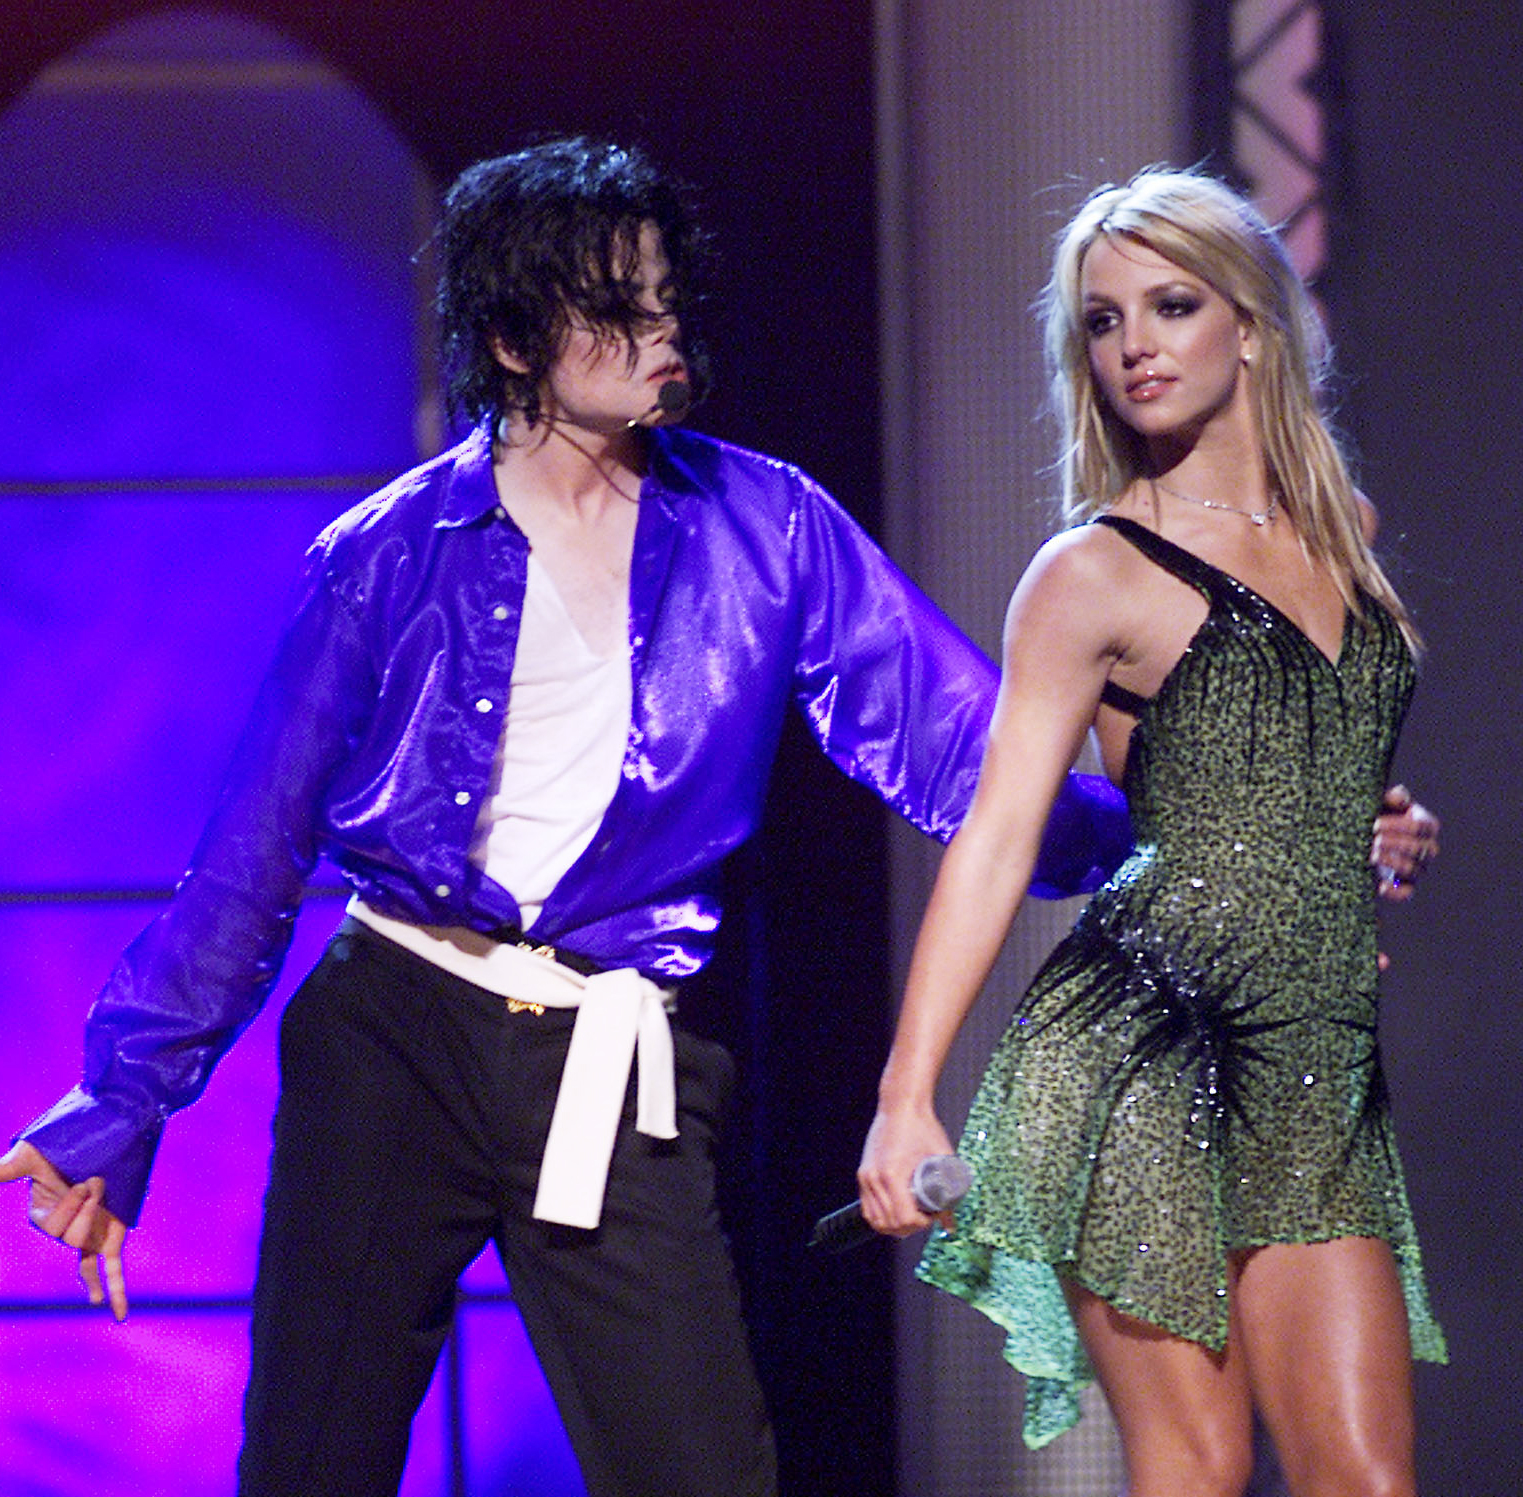 <p>Michael Jackson '30th Anniversary Celebration' Concert, 2001</p>